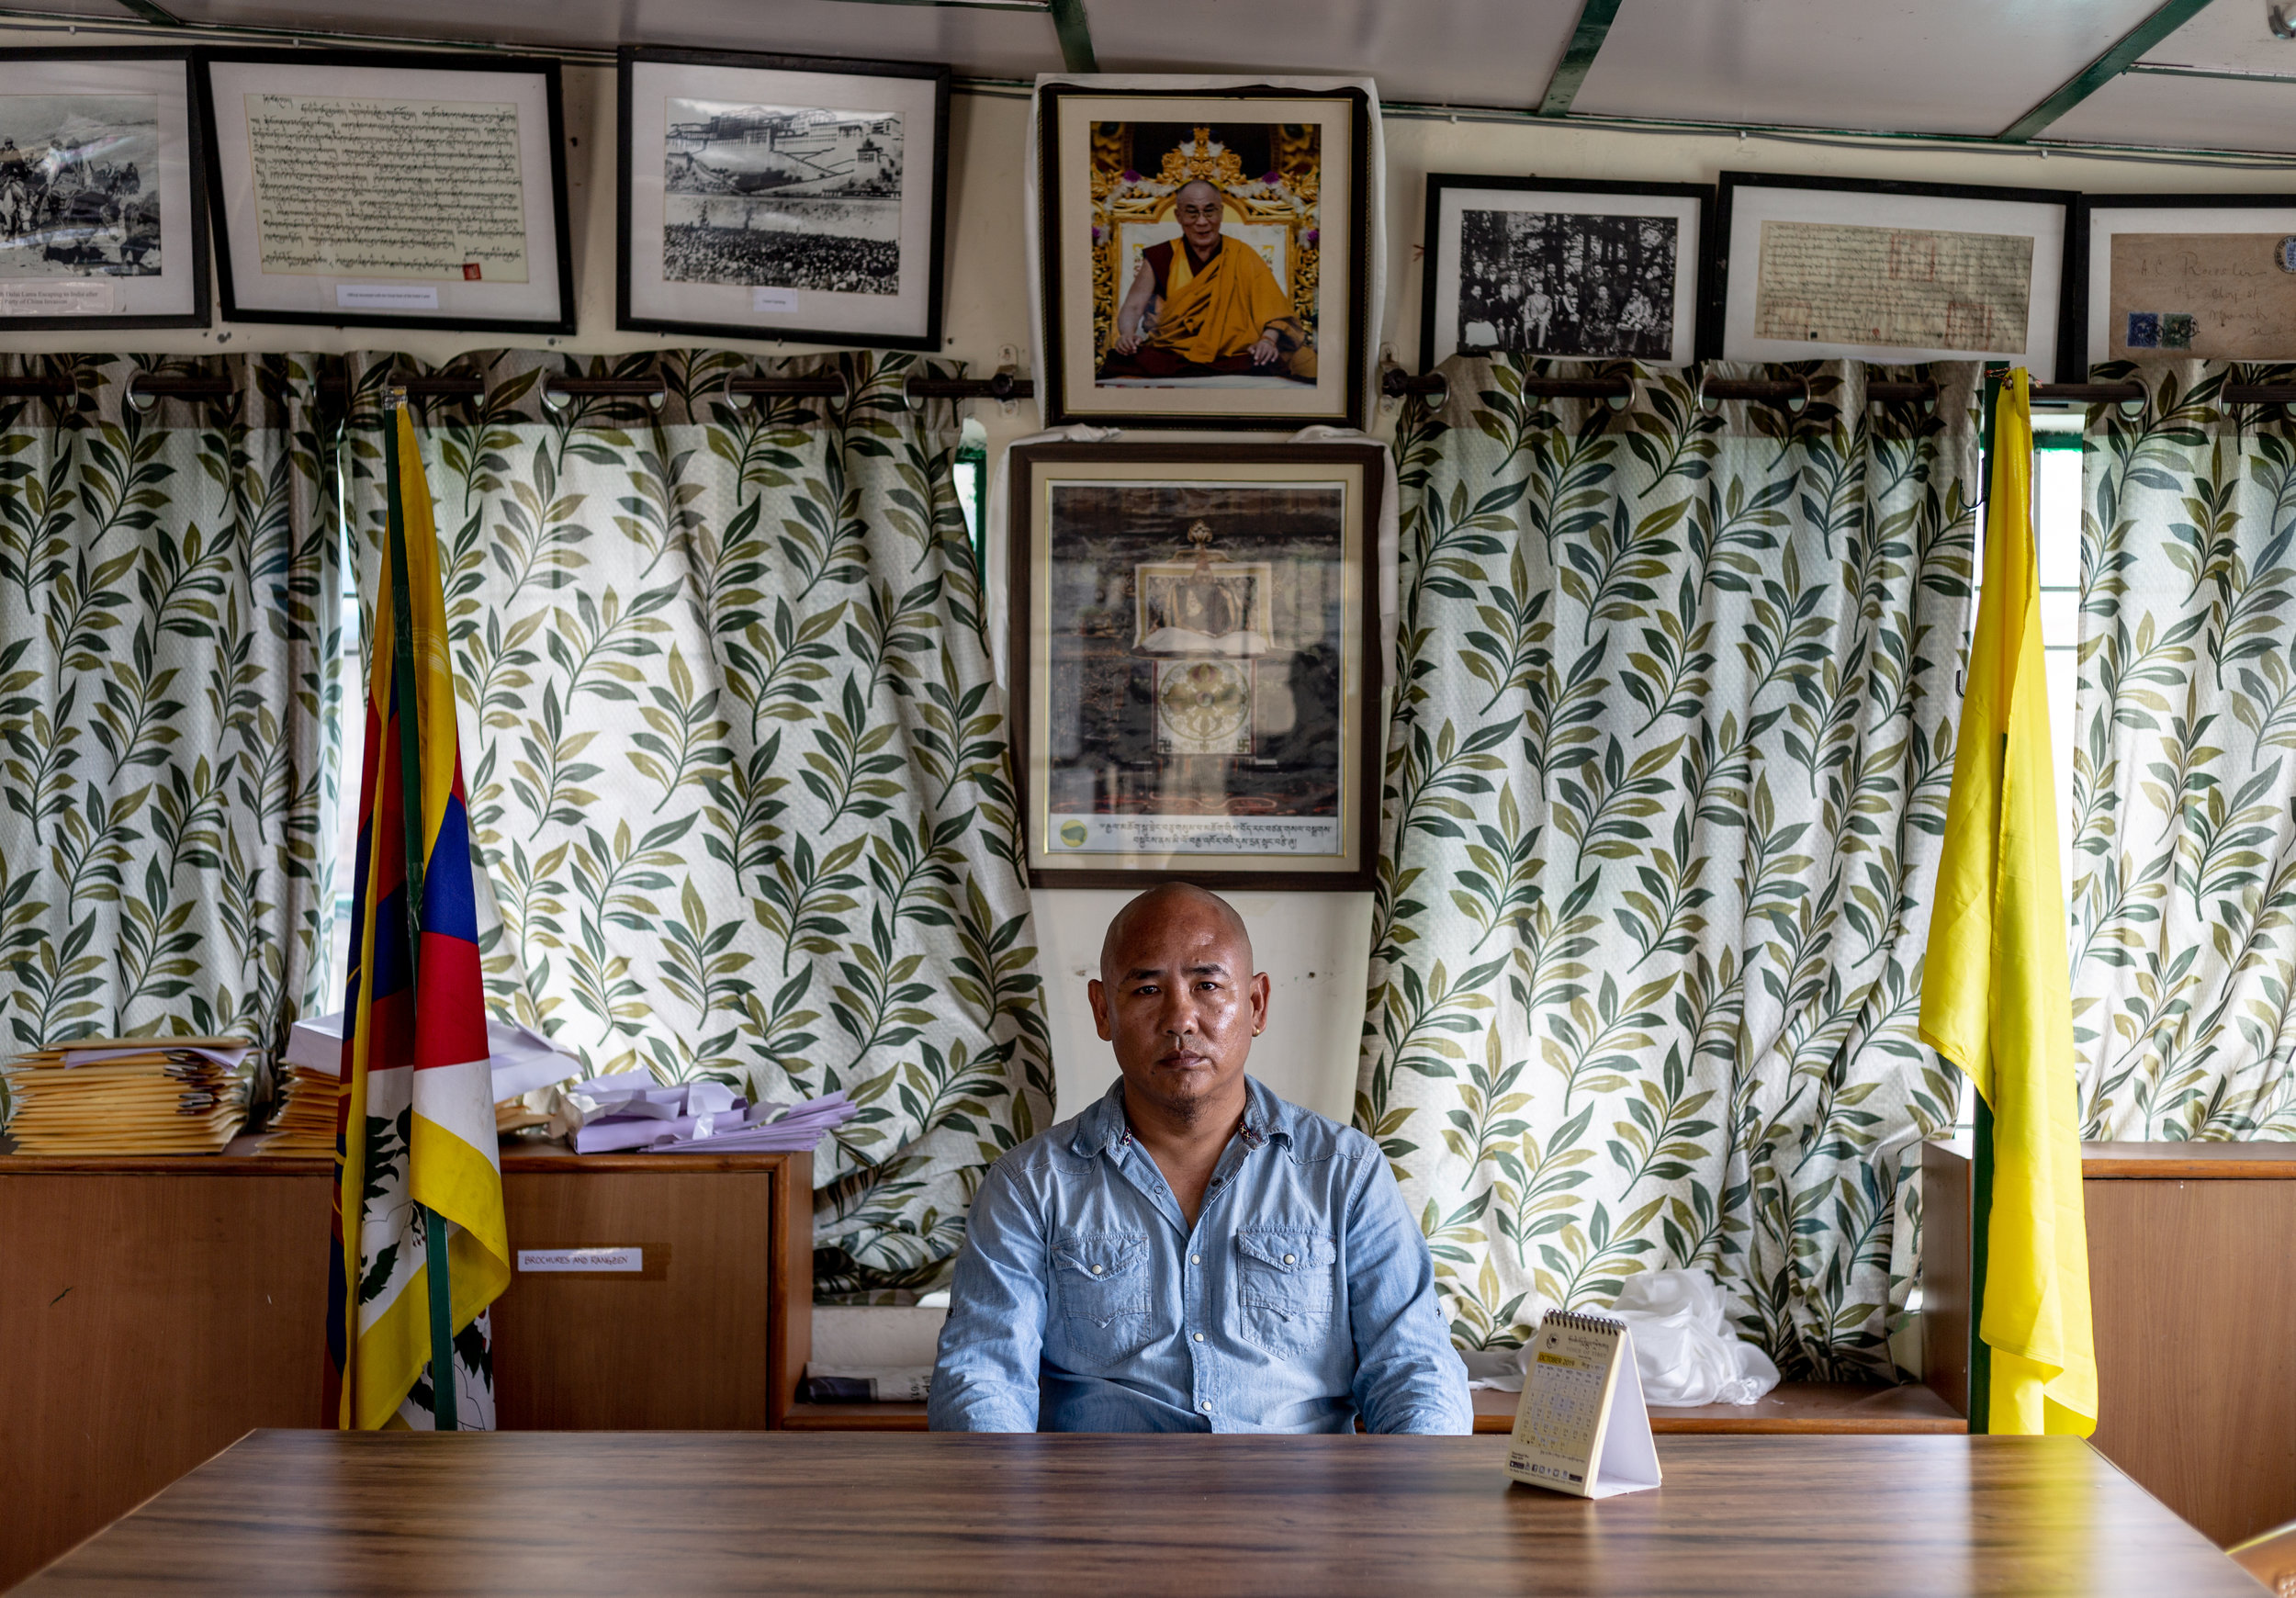 Lobsang Tsering, vice-president of the Tibetan Youth Congress, sitting in the organization's office. The portrait of the Tibetan spiritual leader, the Dalai Lama, hangs on the wall behind him. Photo by Avinash Giri.